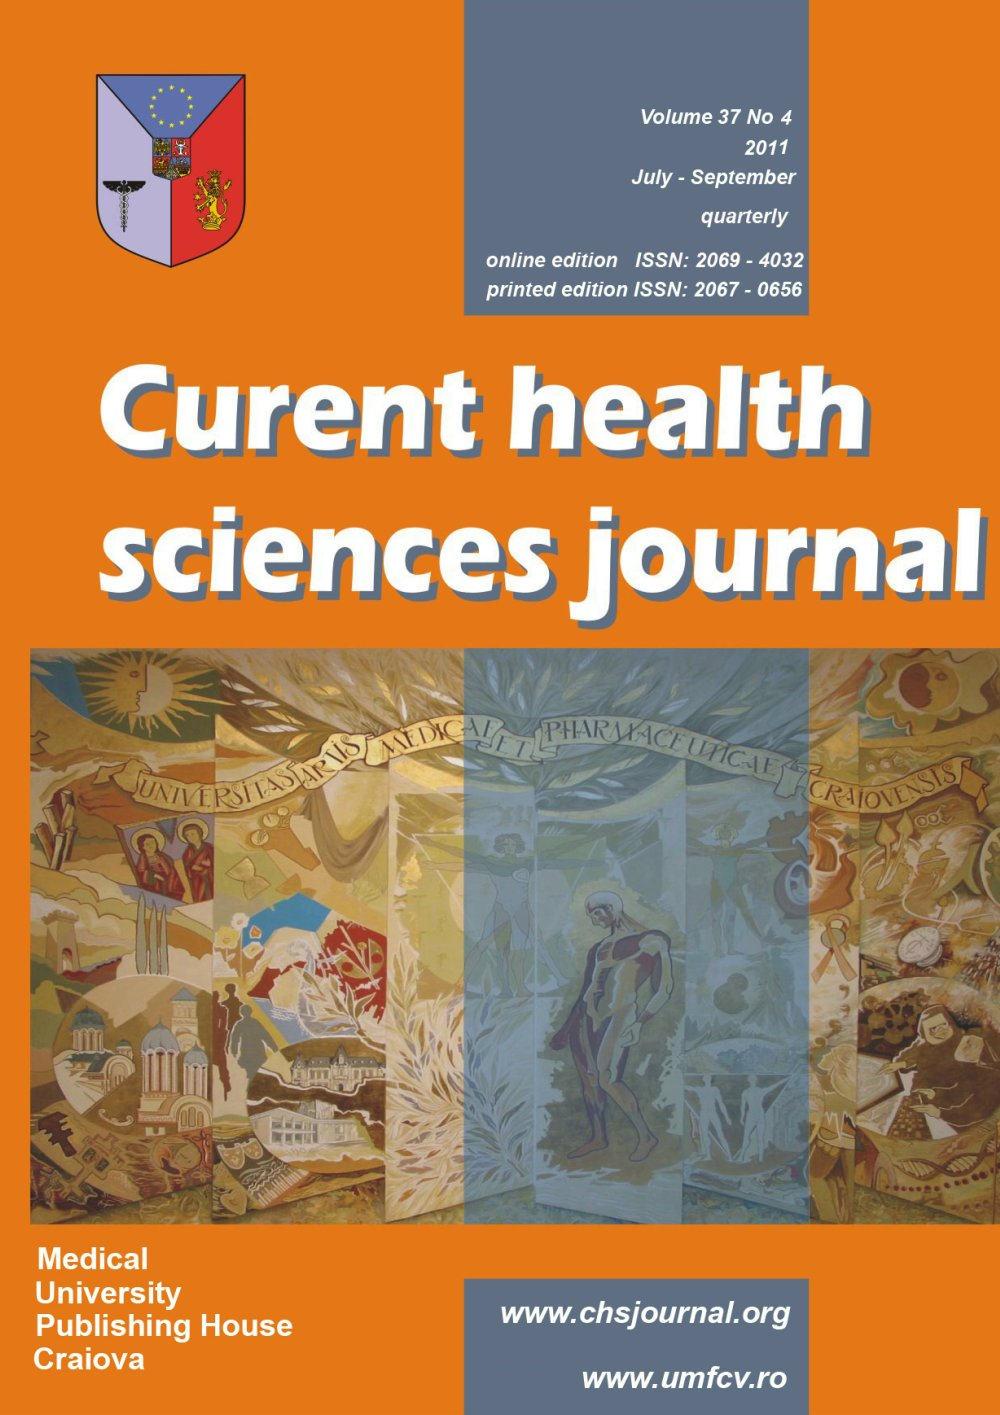 Current Health Sciences Journal, vol. 37 no. 4, 2011